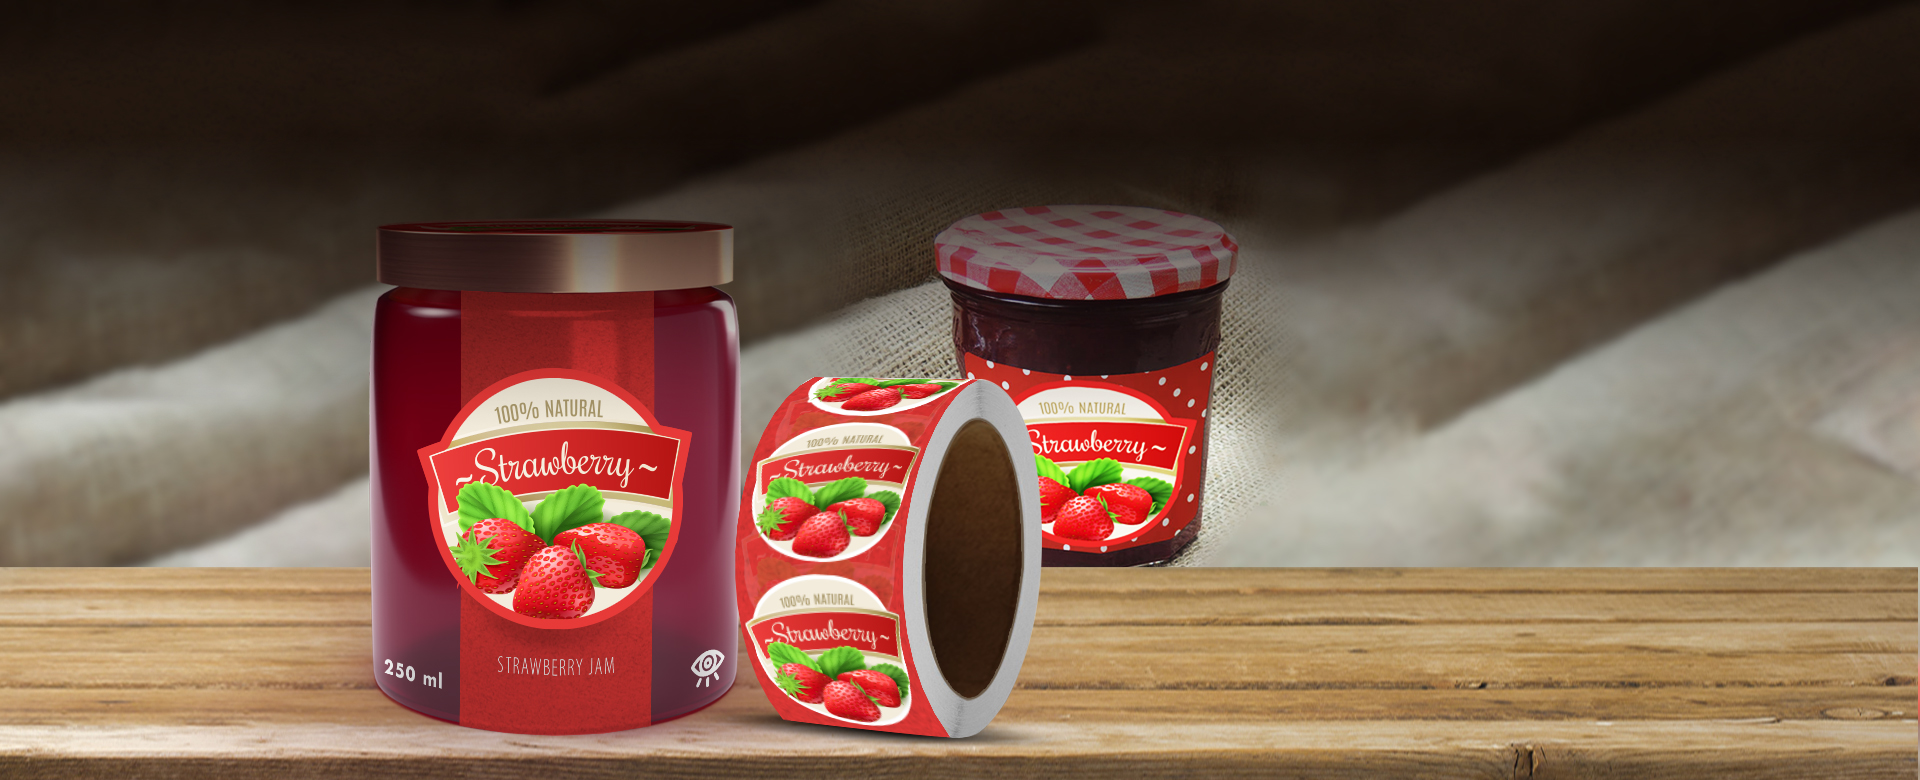 Custom-Jam-and-Jelly-Labels